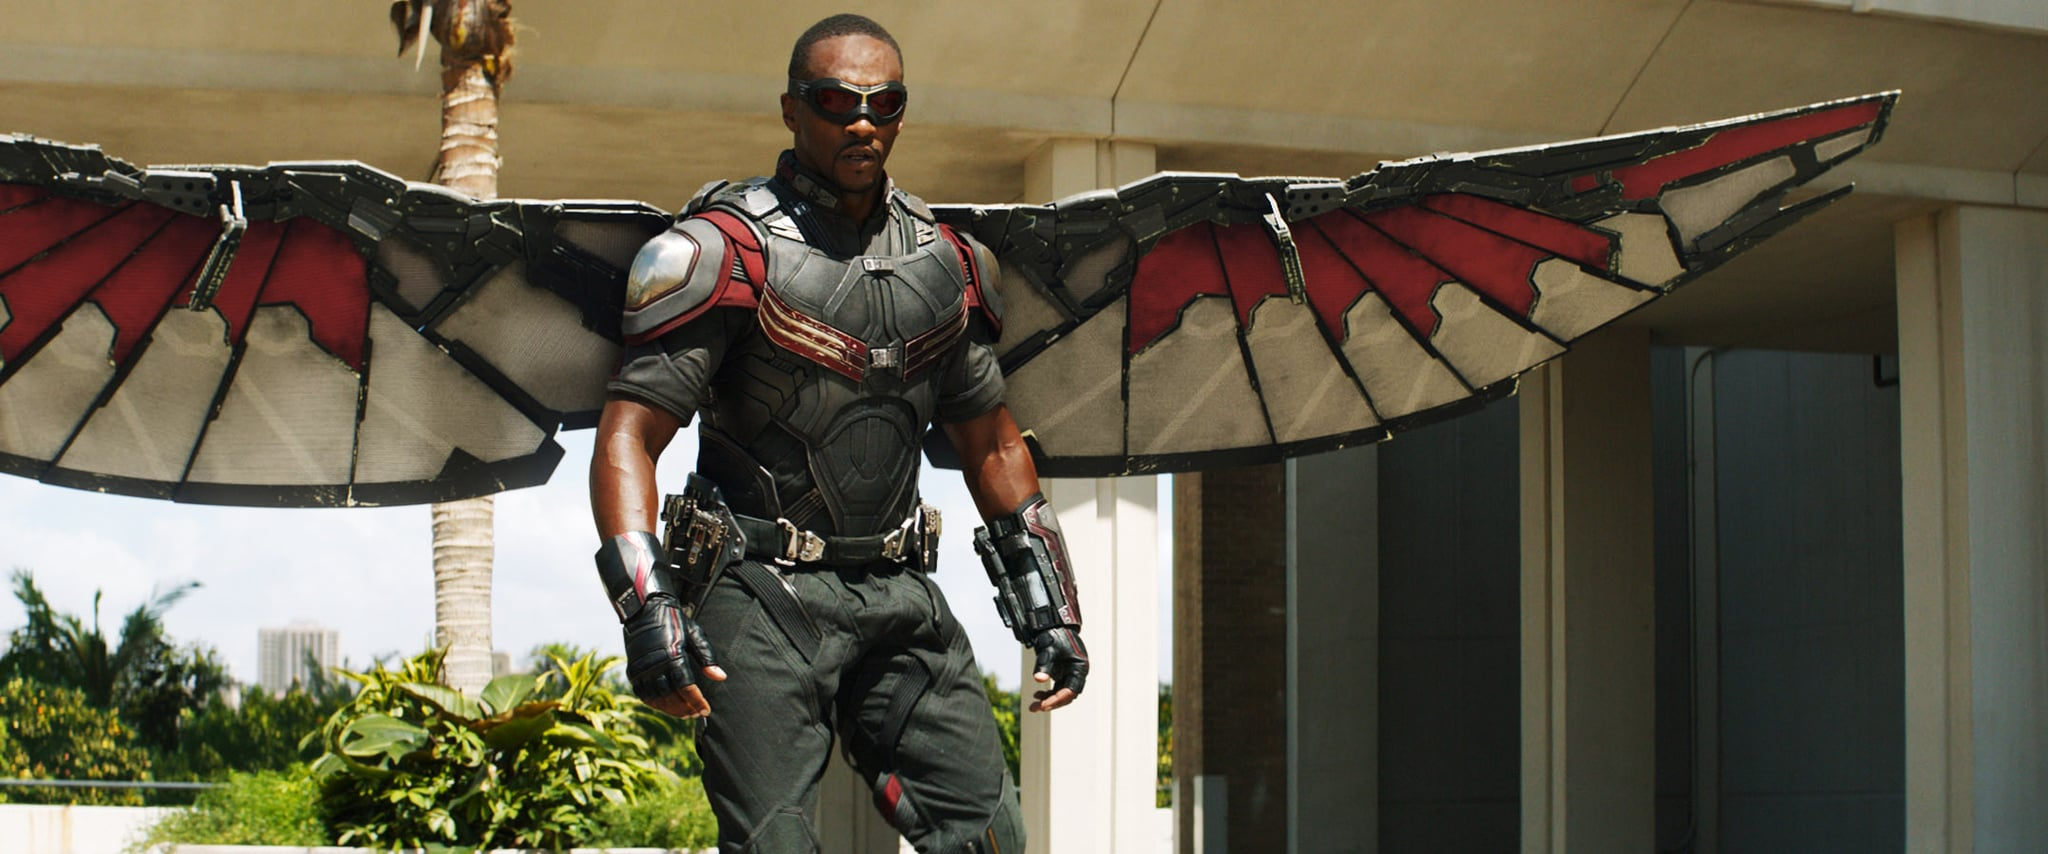 CAPTAIN AMERICA: CIVIL WAR, Anthony Mackie, as Falcon, 2016. / TM &  2016 Marvel. All rights reserved. /  Walt Disney Studios Motion Pictures / courtesy Everett Collection